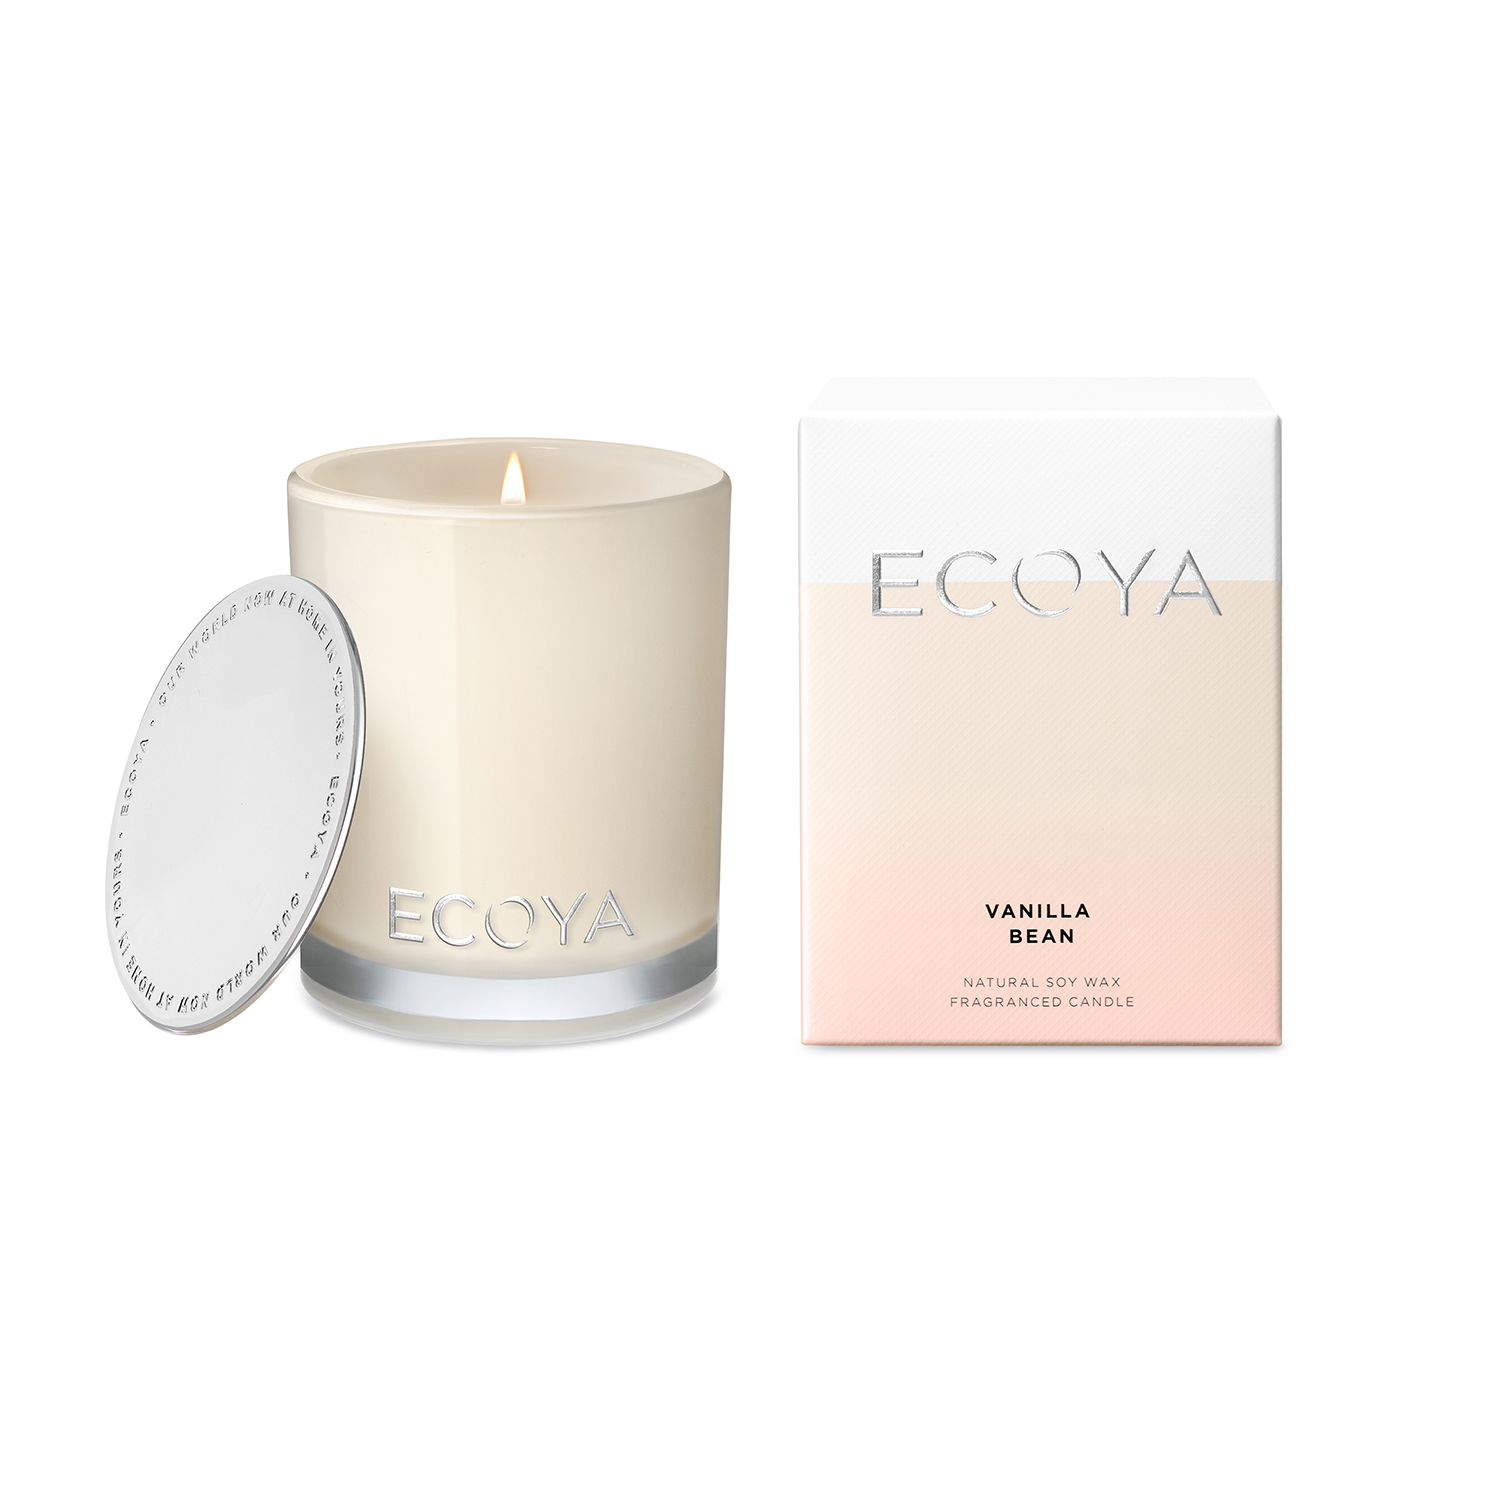 Ecoya Madison Jar Vanilla Bean Candle 400g